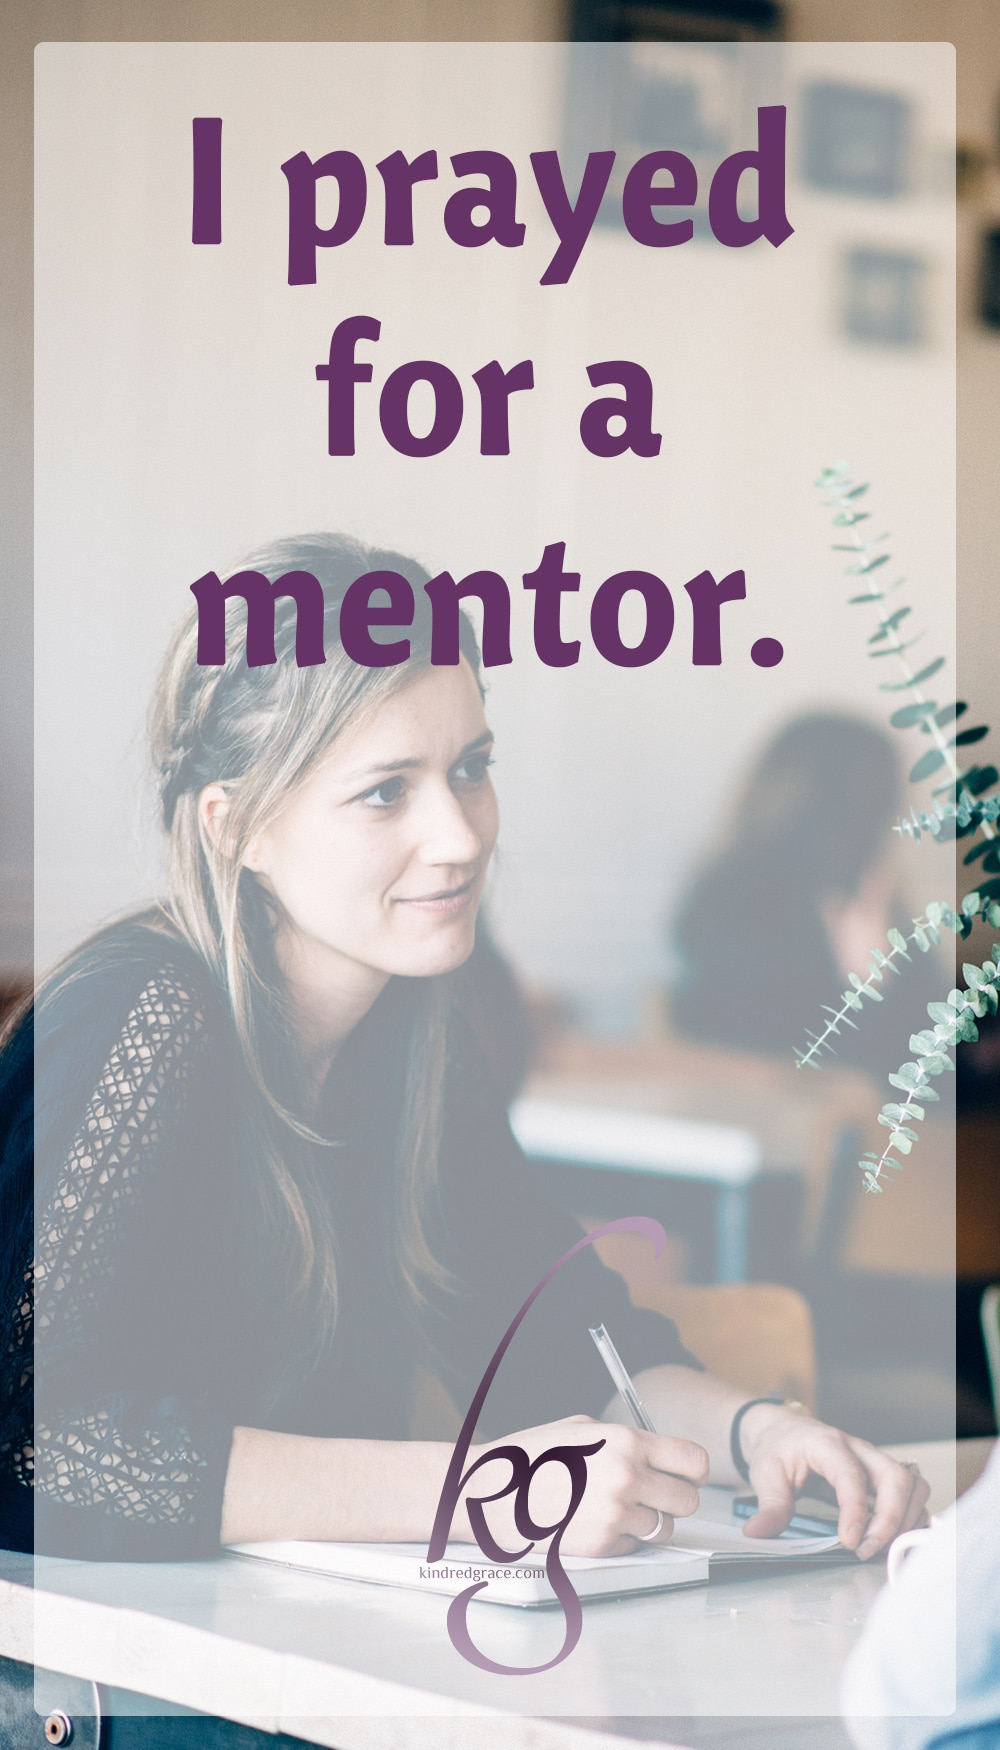 I have learned that mentorship is not a buzzword or passing fad. Mentorship is part of God's plan for the young—to seek for wisdom, discretion, and grace by humbly and fervently applying themselves to the wisdom offered by those who have gone before. via @KindredGrace